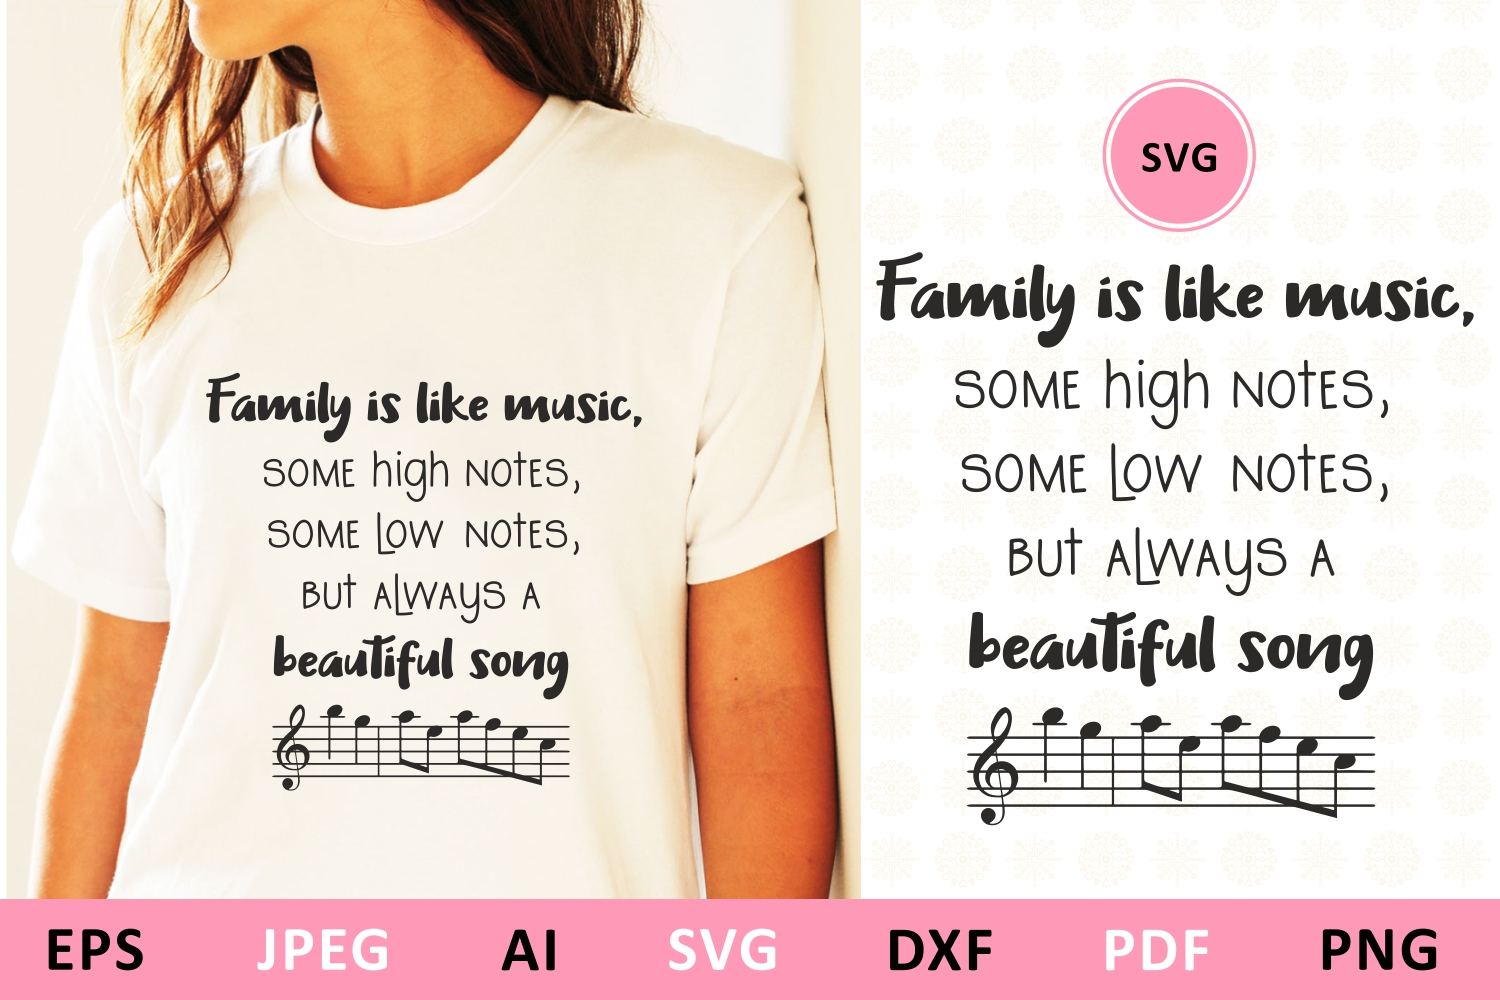 Download Free Family Is Like Music Family Quote Graphic By Millerzoa for Cricut Explore, Silhouette and other cutting machines.